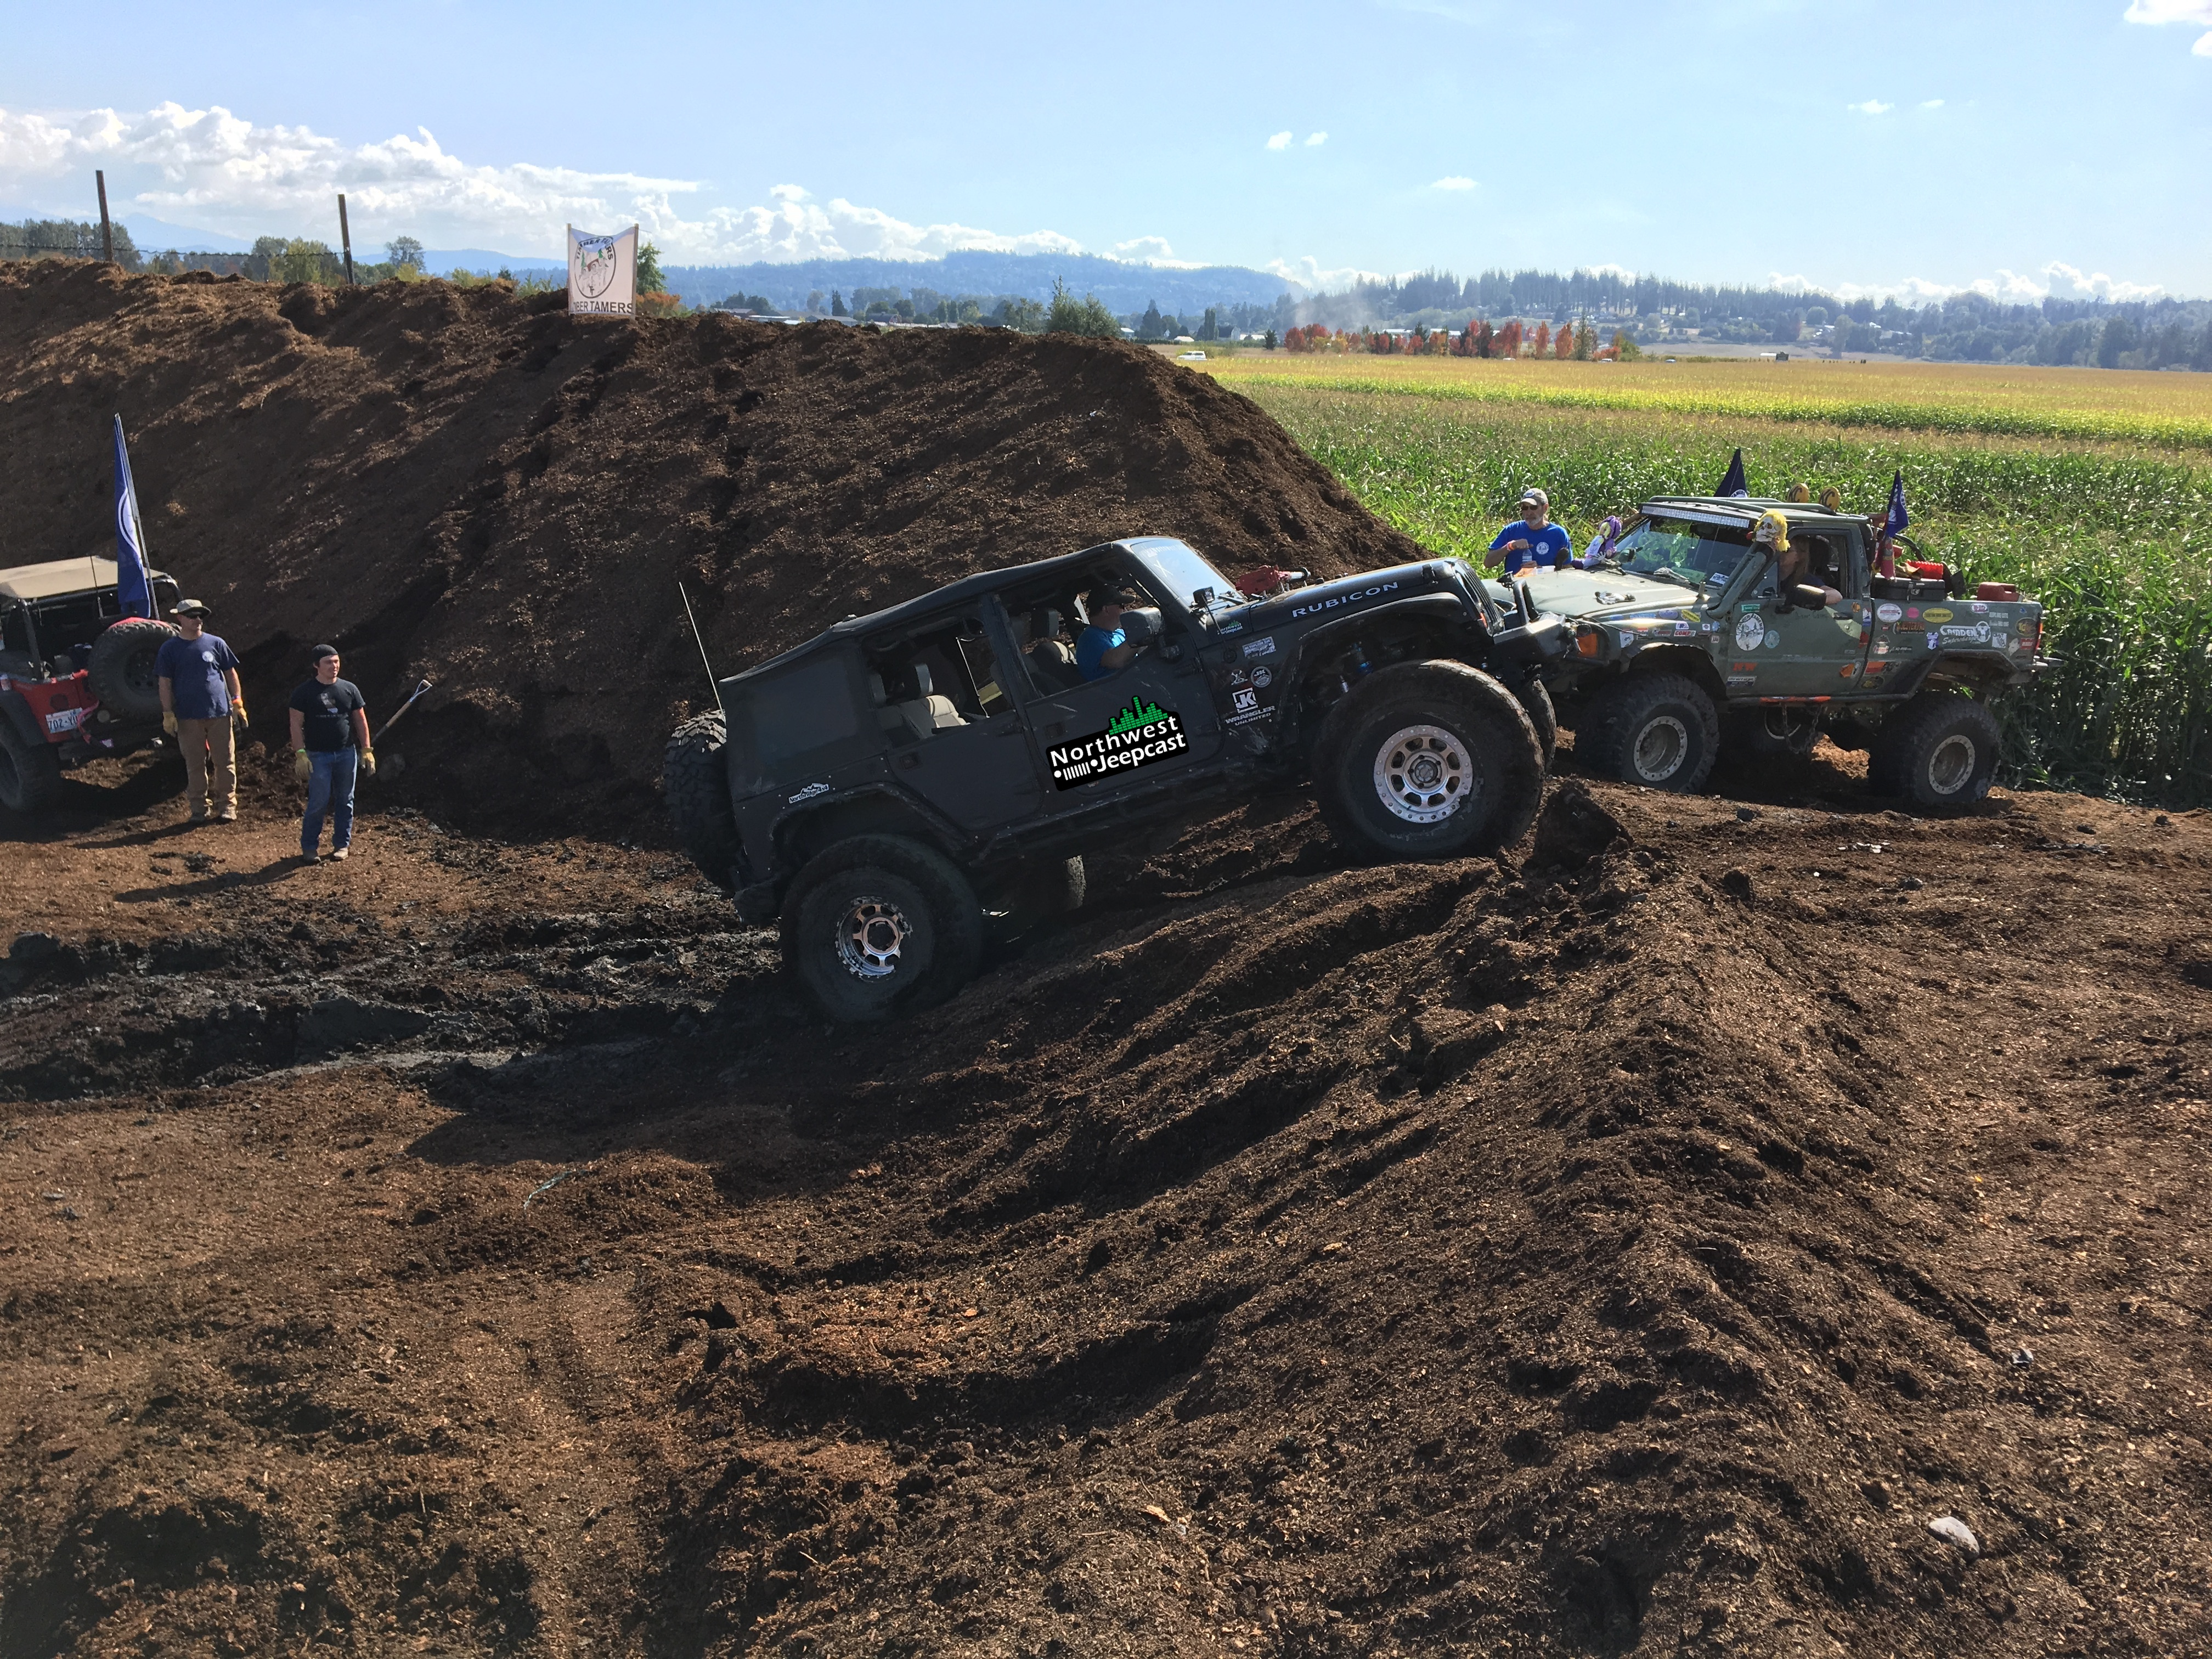 Northwest Jeepcast - Jeep Podcast - 2017 Northwest Offroad Expo